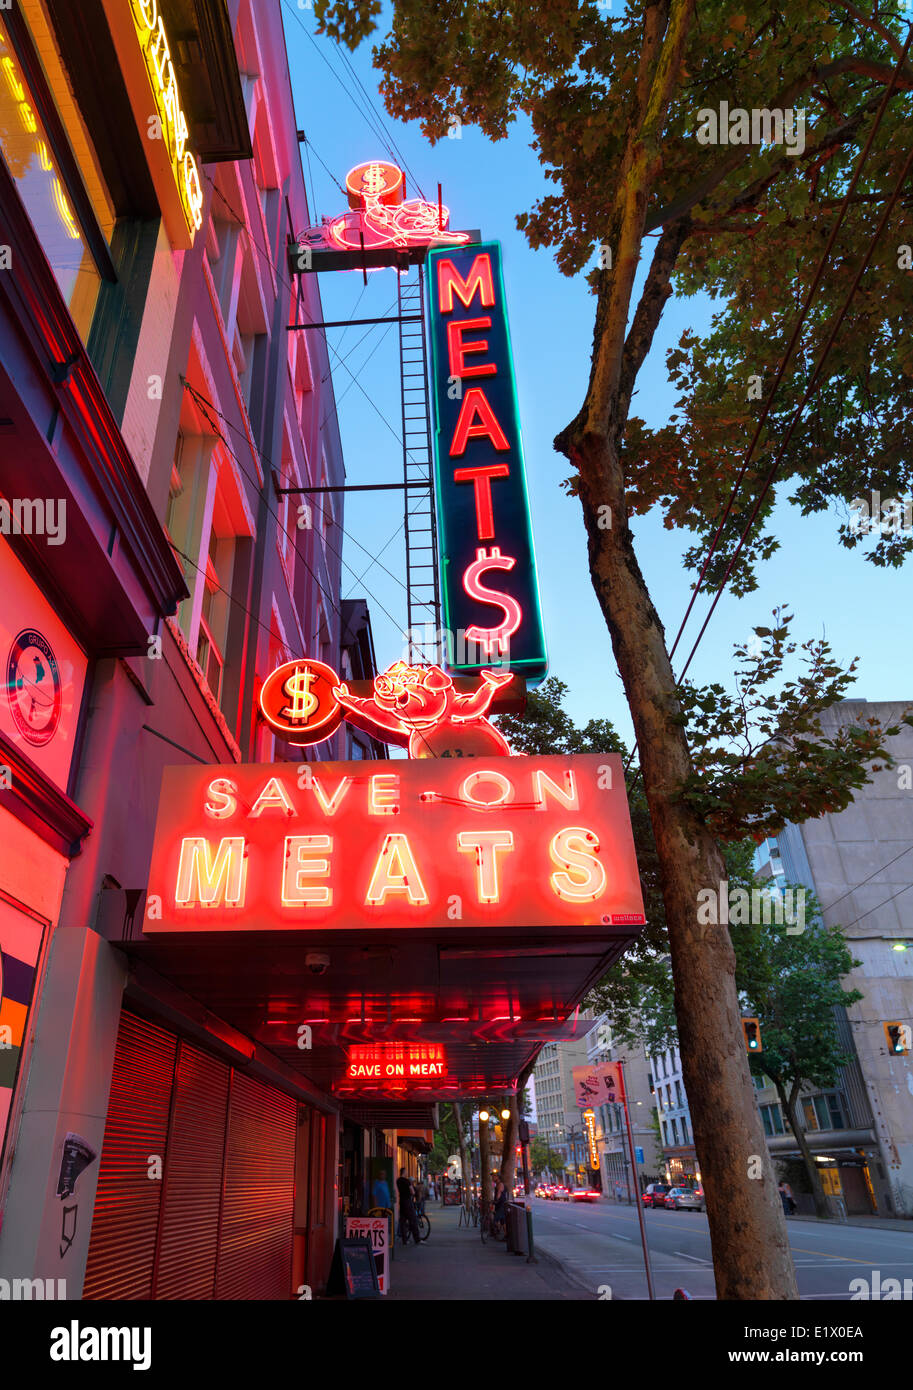 Save On Meats sign, Vancouver, British Columbia, Canada - Stock Image